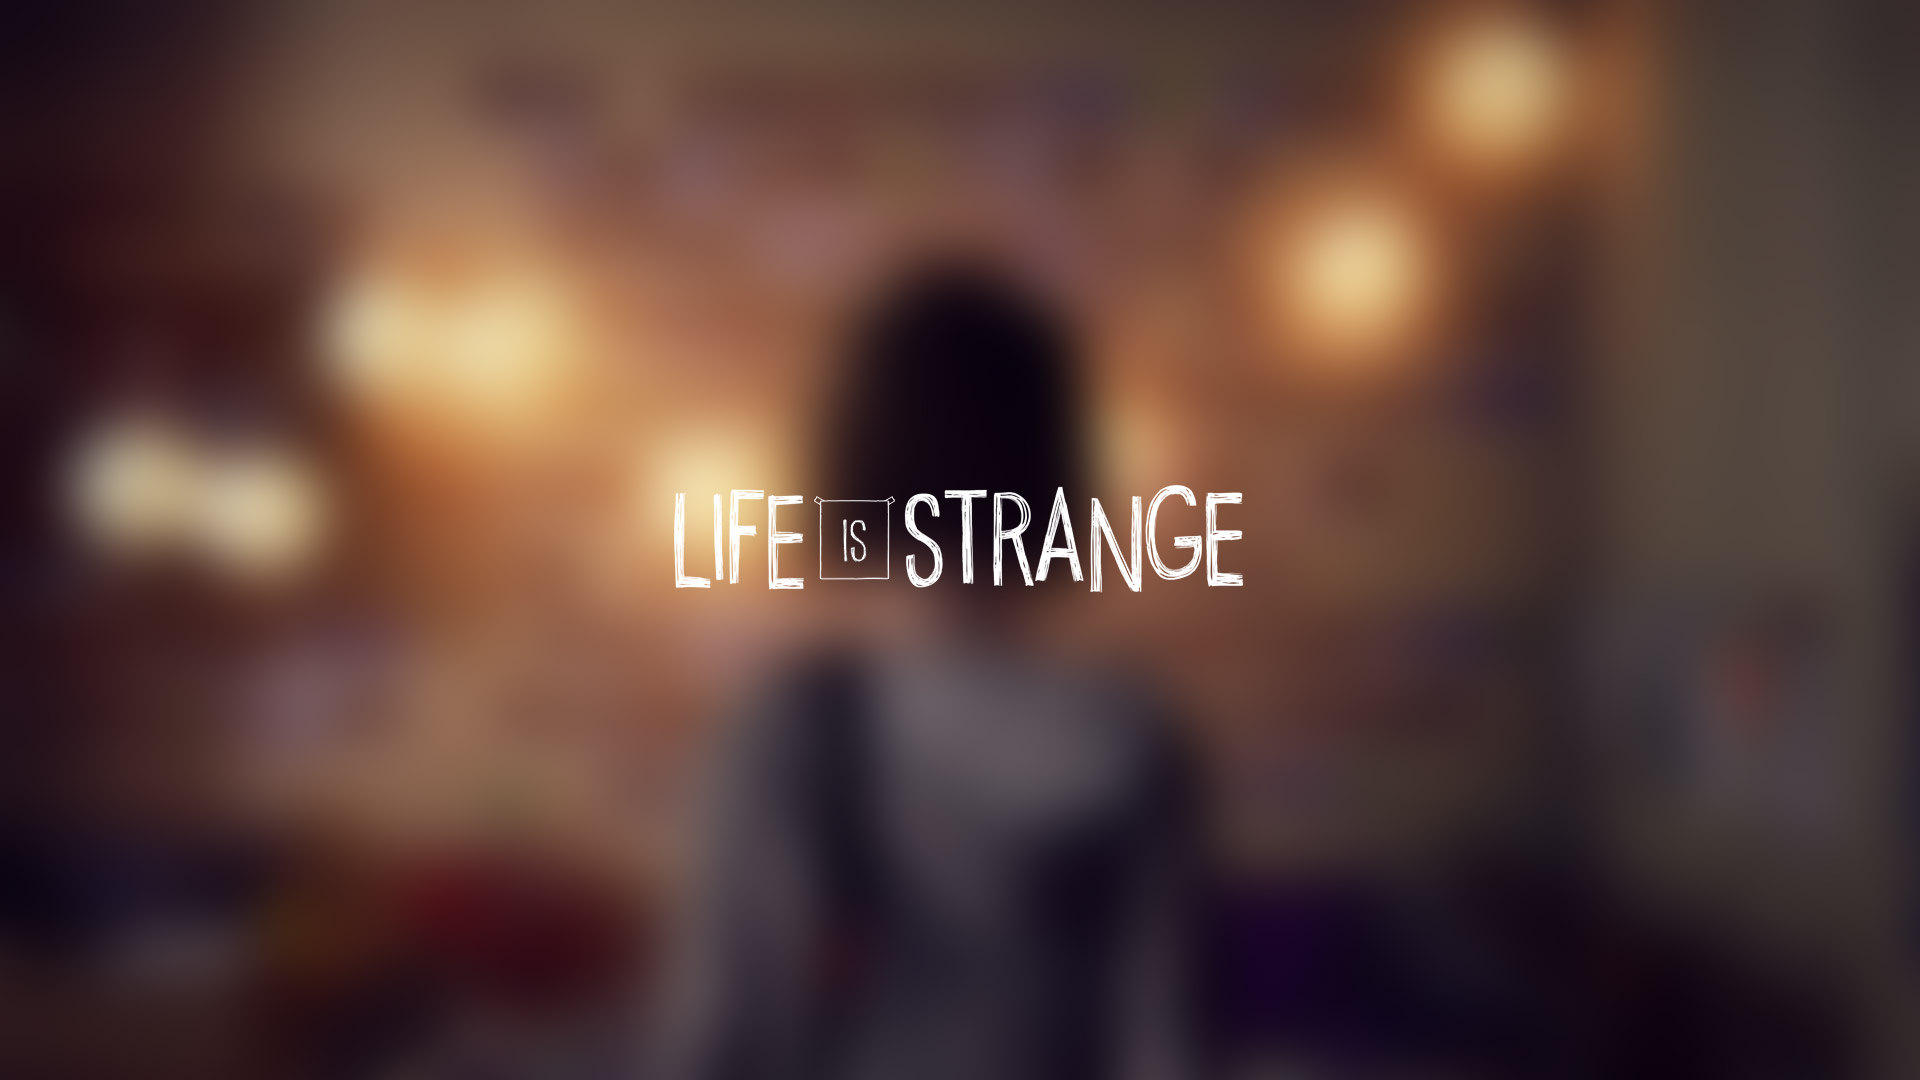 Free Life Is Strange Wallpaper in 1920x1080